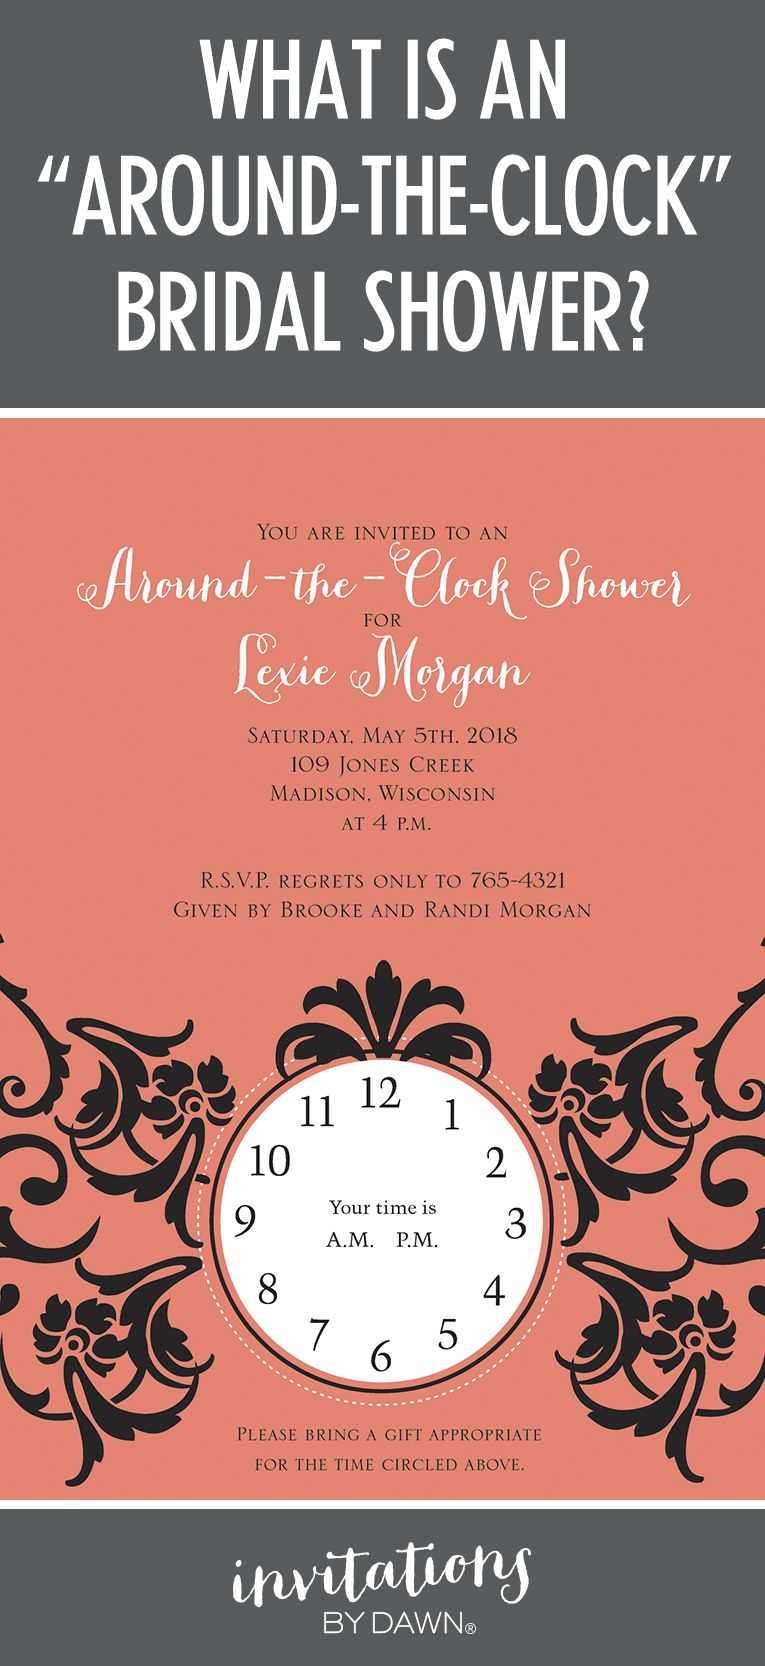 What Is An Around The Clock Bridal Shower Bridal Showers Clocks